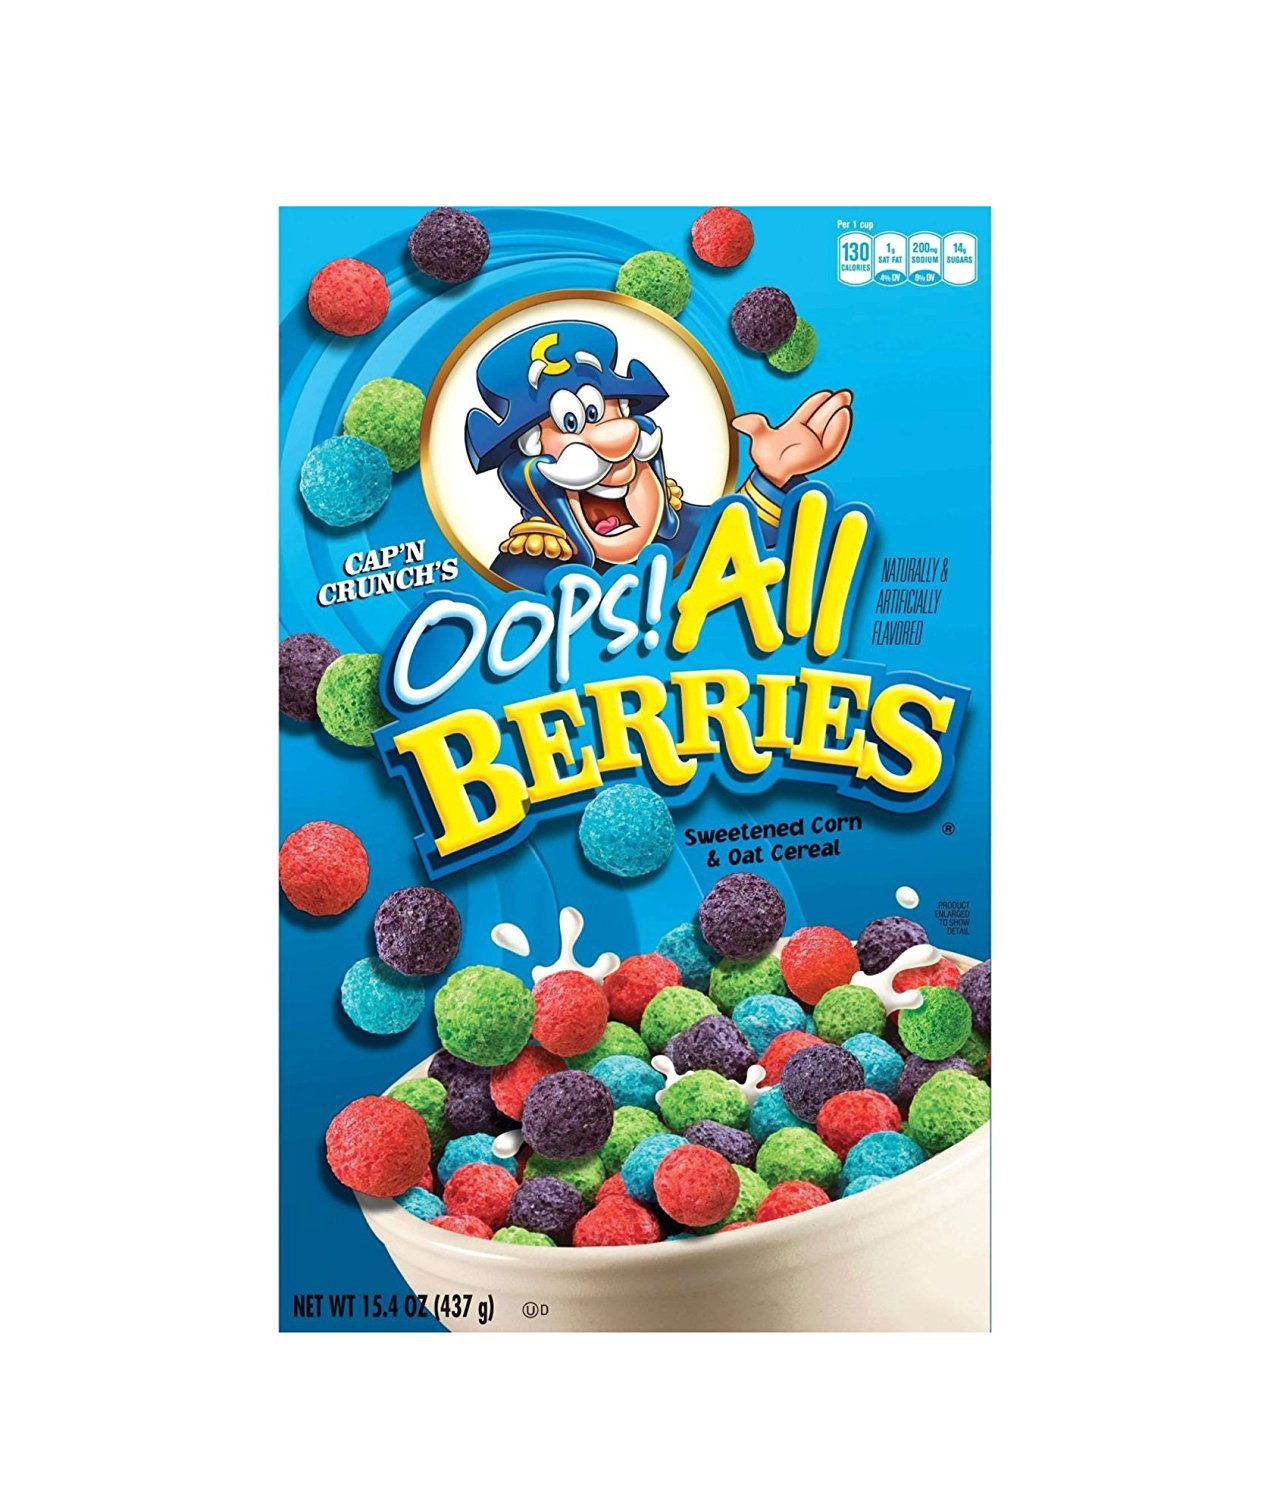 Amazon Com Cap N Crunch S Oops All Berries Cereal 15 4 Oz Set Of 2 Breakfast Cereals We could simply relax and shovel the crunchy, flesh tearing berries into our faces with reckless abandon because someone had done all the hard work for. cap n crunch s oops all berries cereal 15 4 oz set of 2